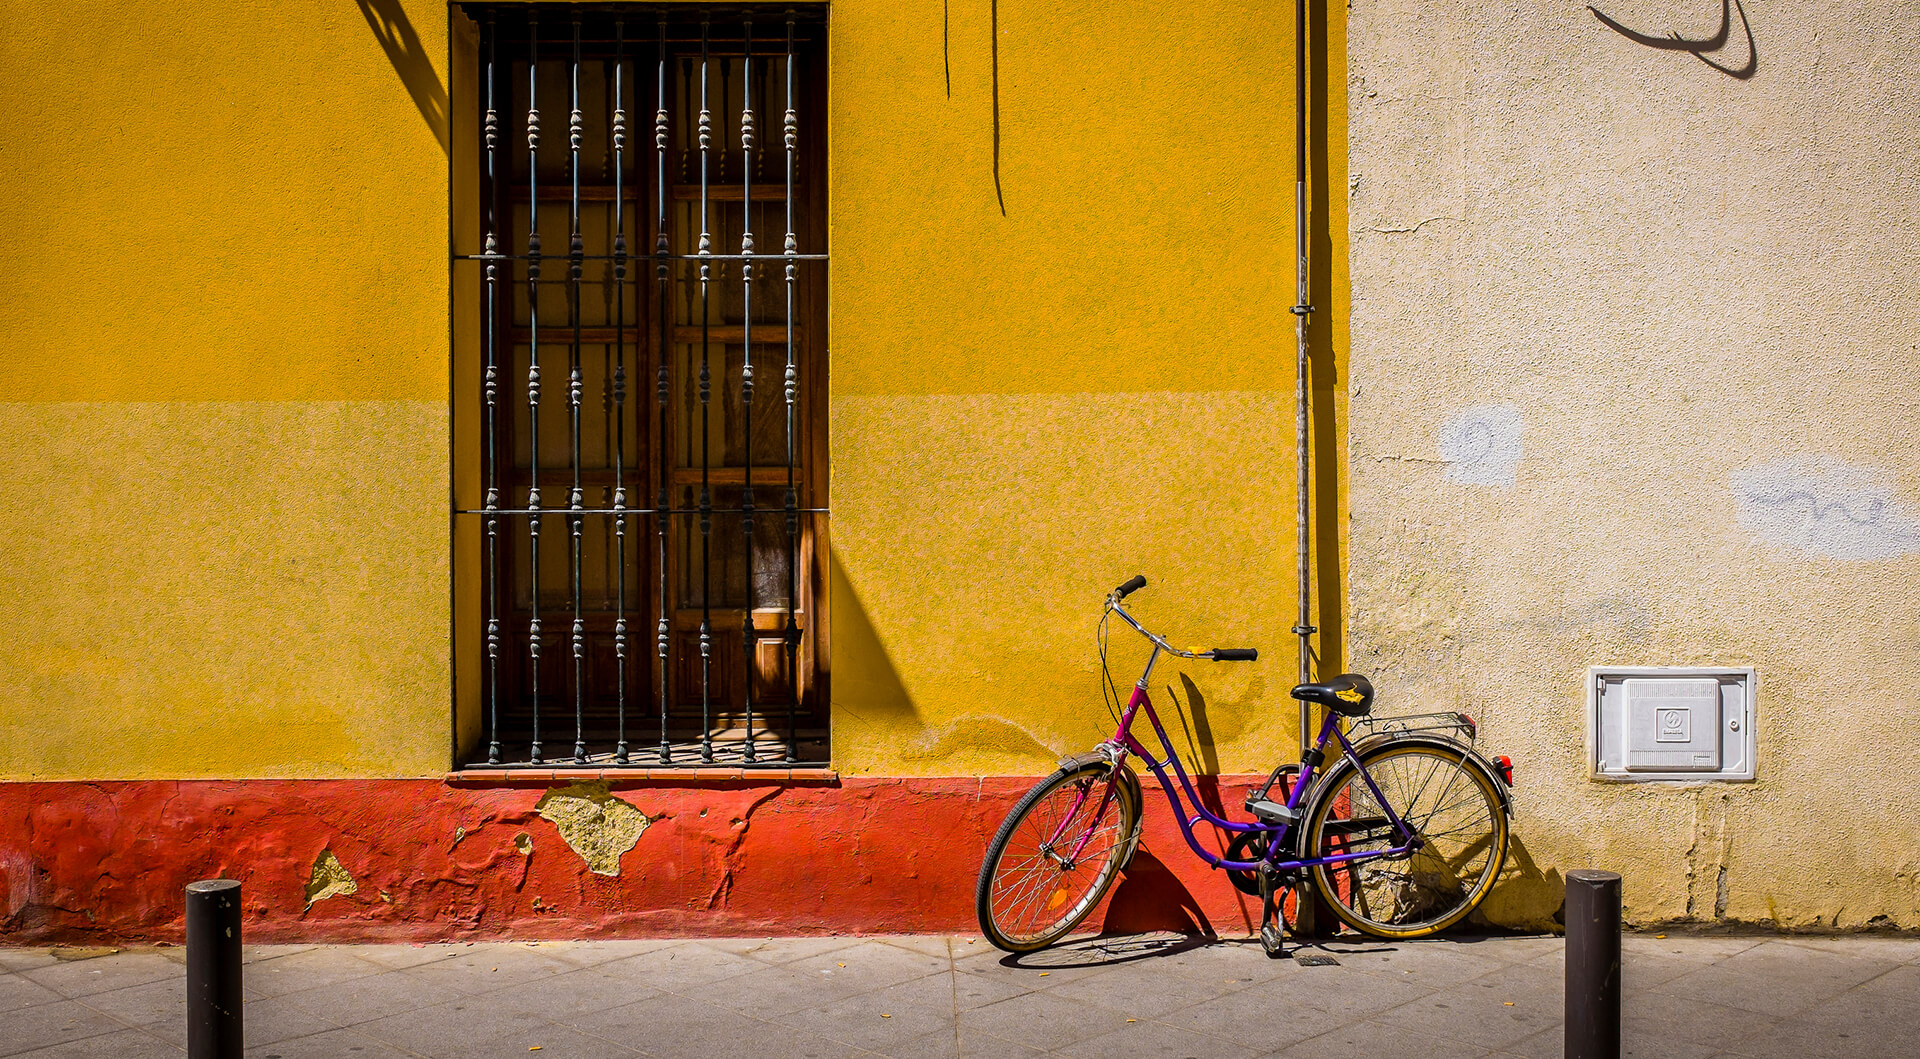 The best bike-friendly cities